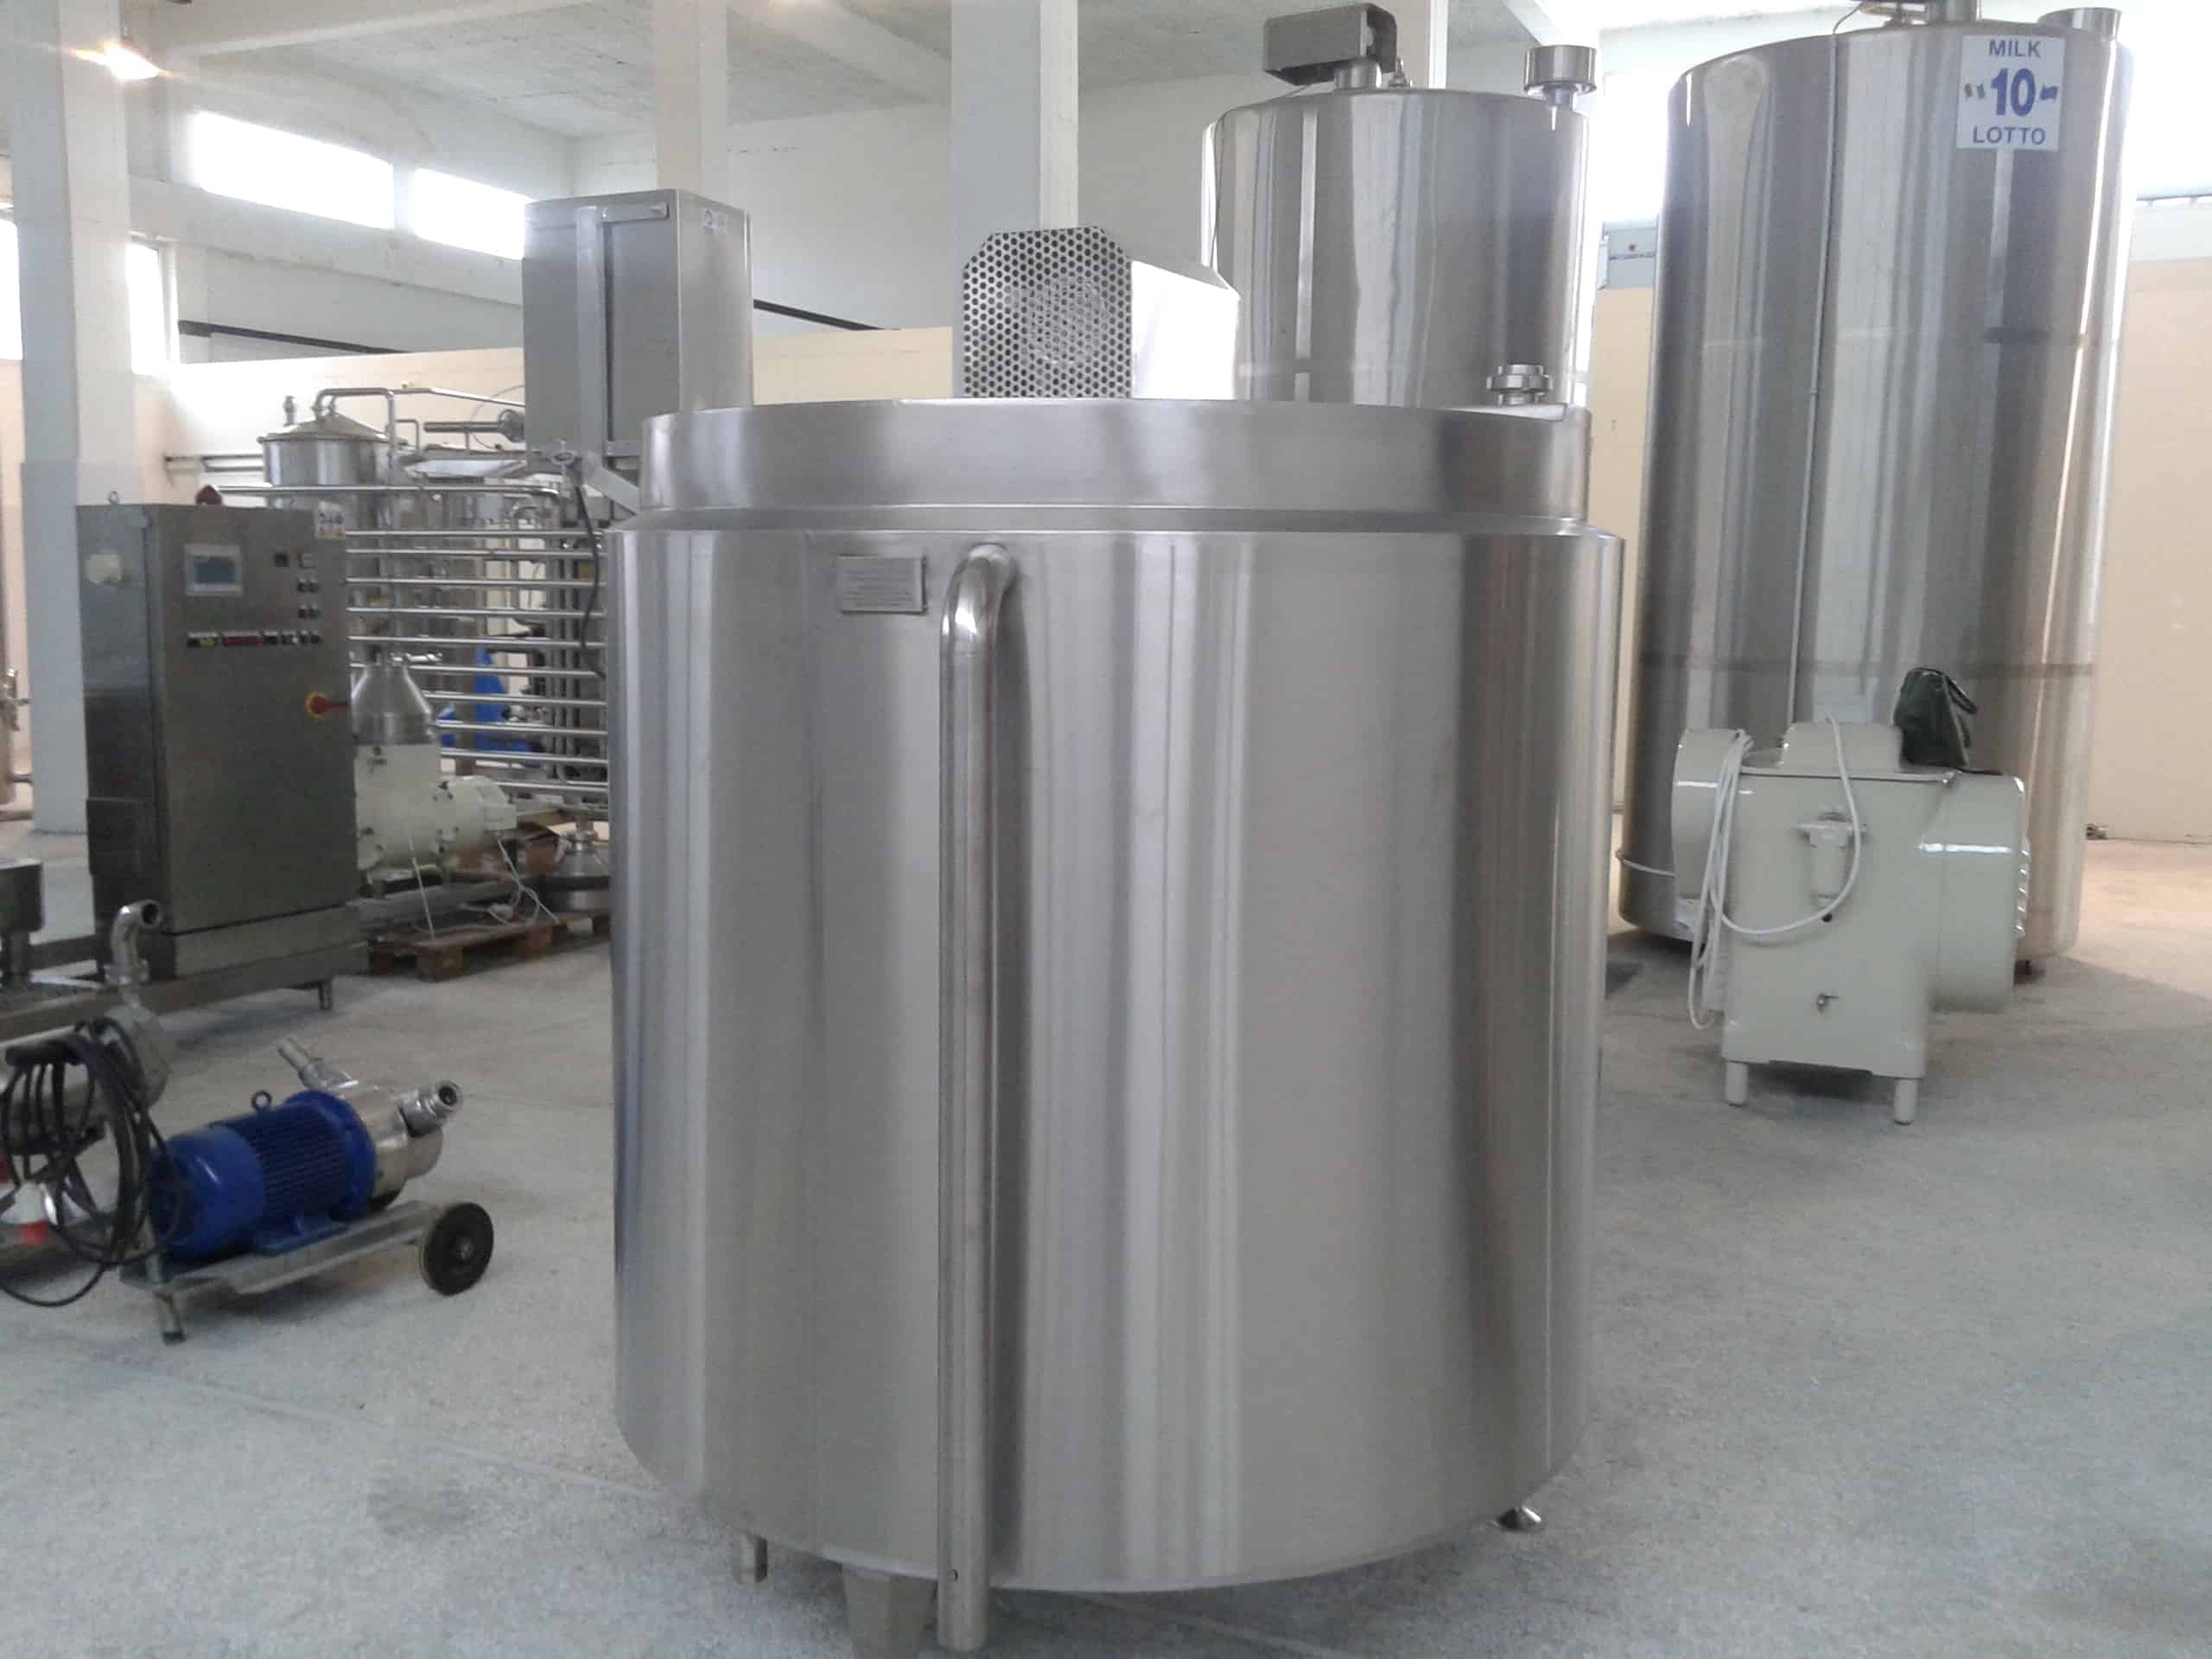 NEW 2,200 Liter S/S Processor / Batch Pasteurizer, Equipped with Top-Mount Agitation, Variable Speed Control, & Hinged-Lid